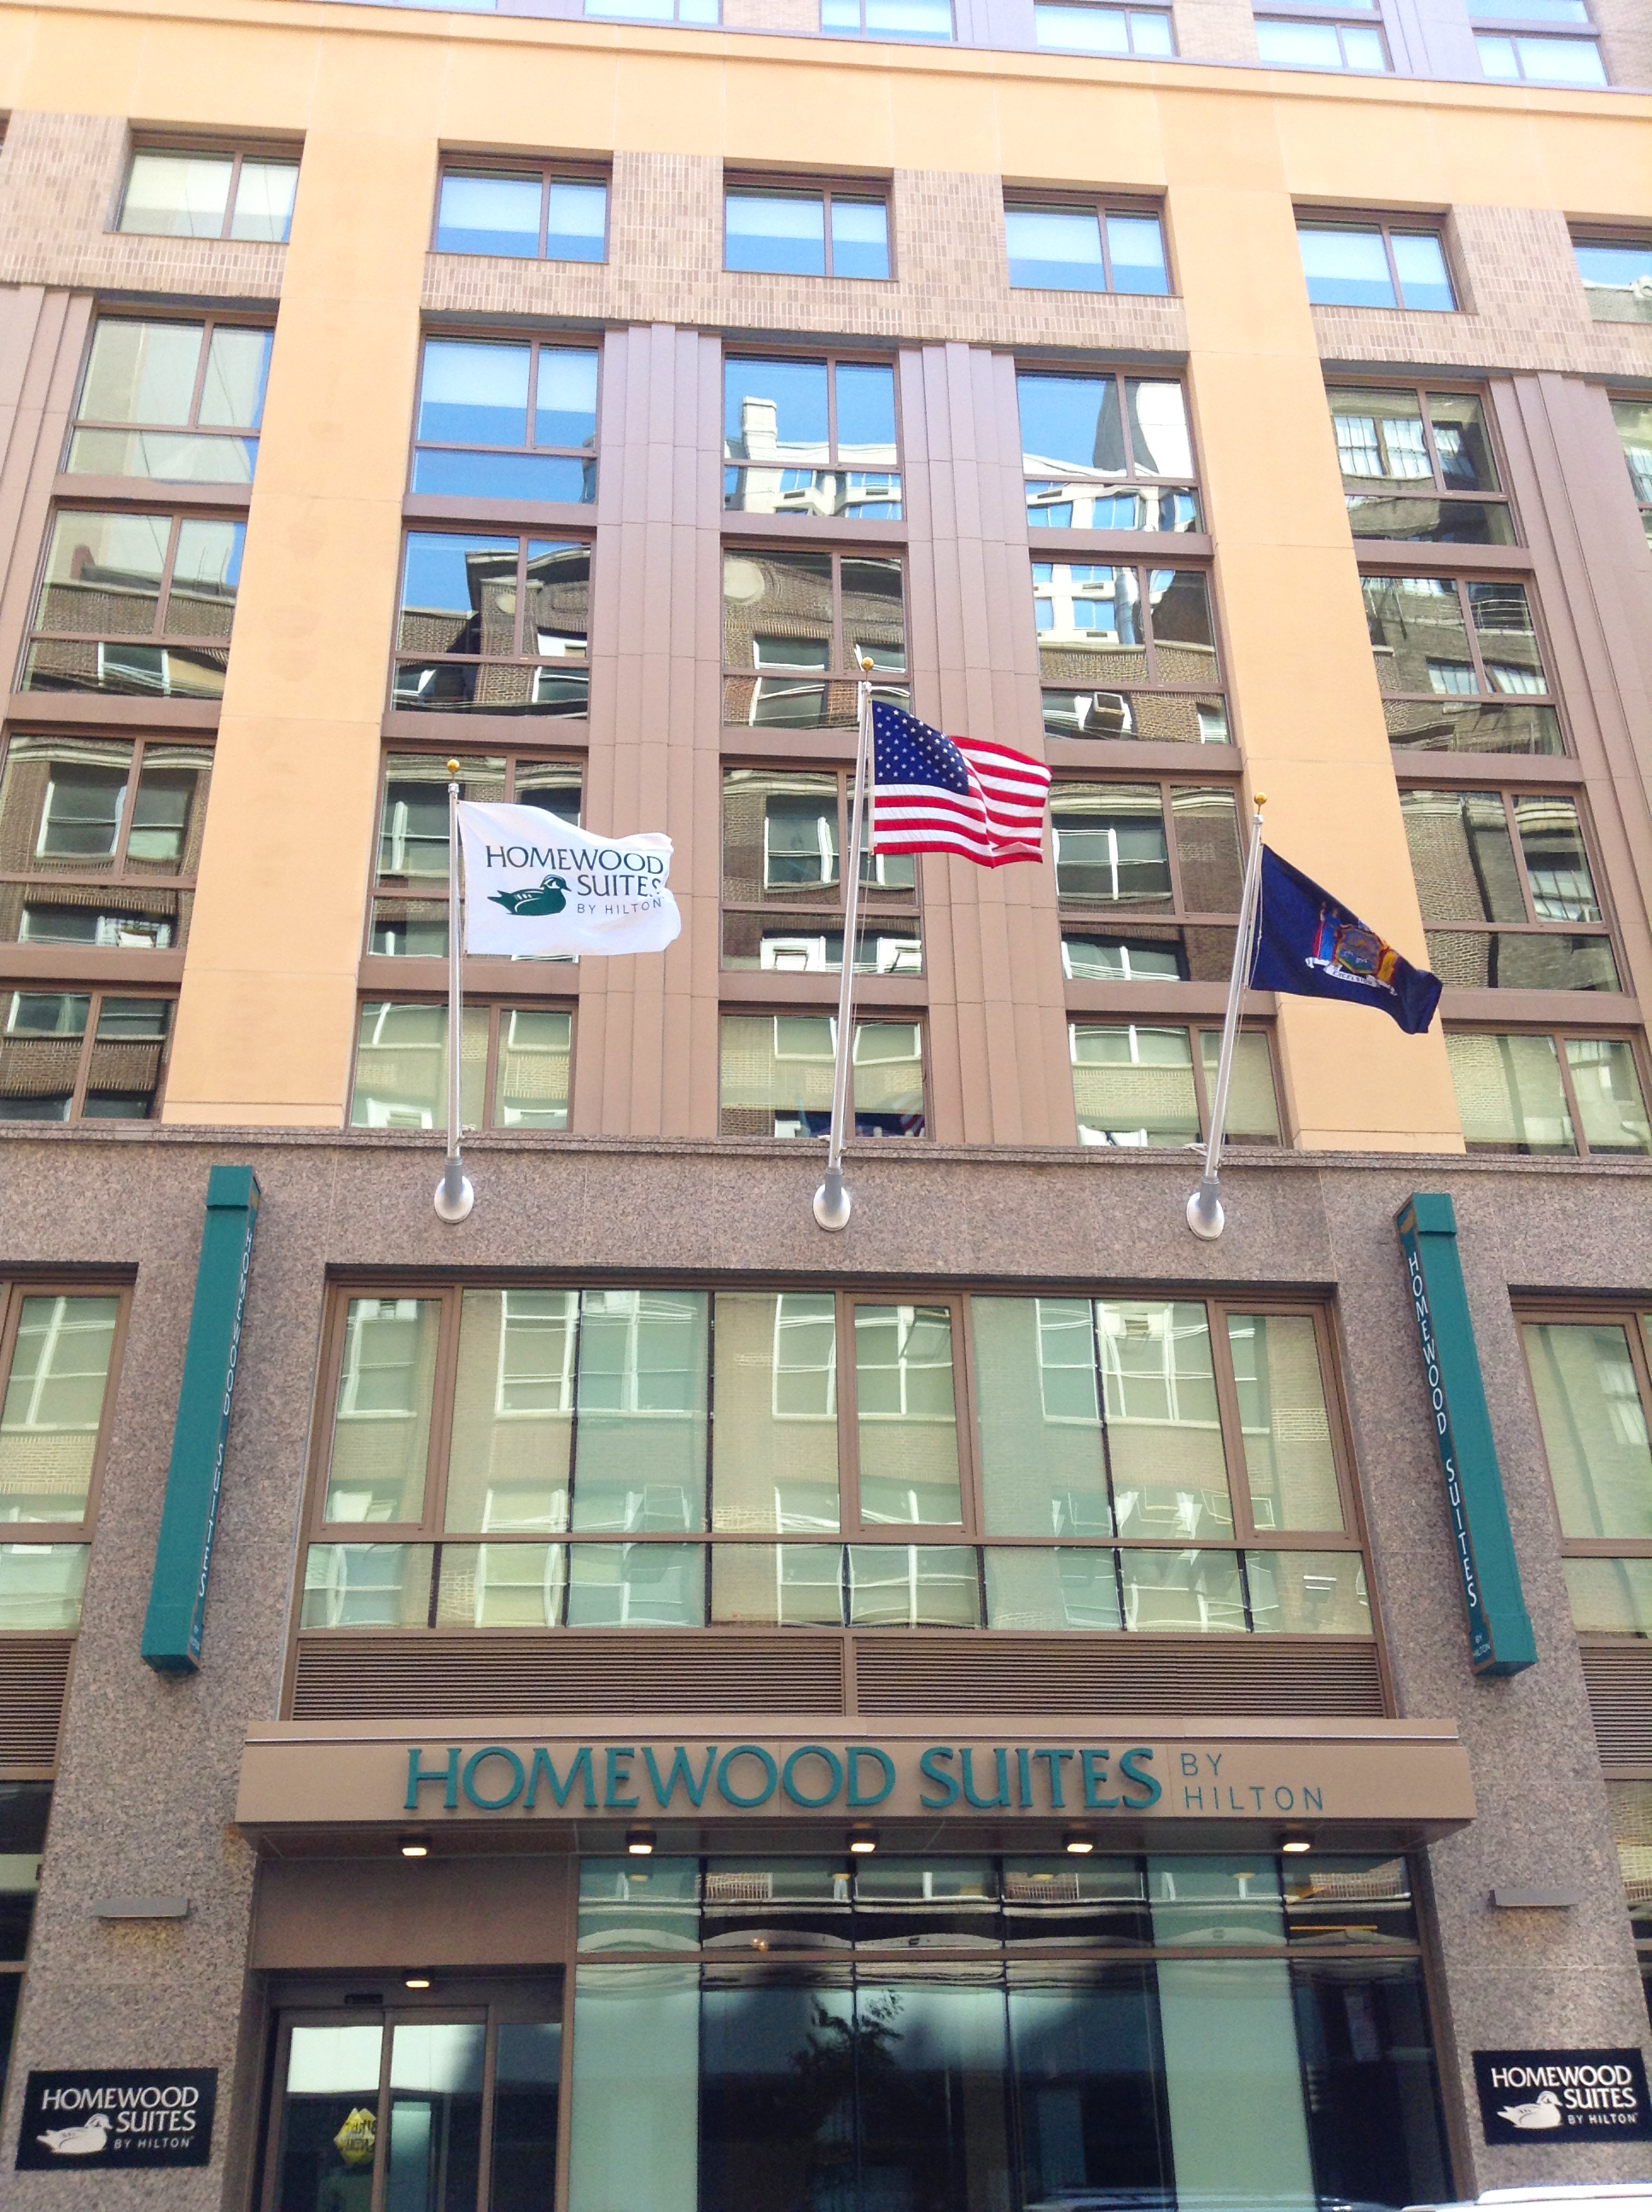 Homewood Suites New York/Midtown Manhattan Times Square South Opened Today, Marking the Brand's First New York City Hotel. (Photo: Business Wire)